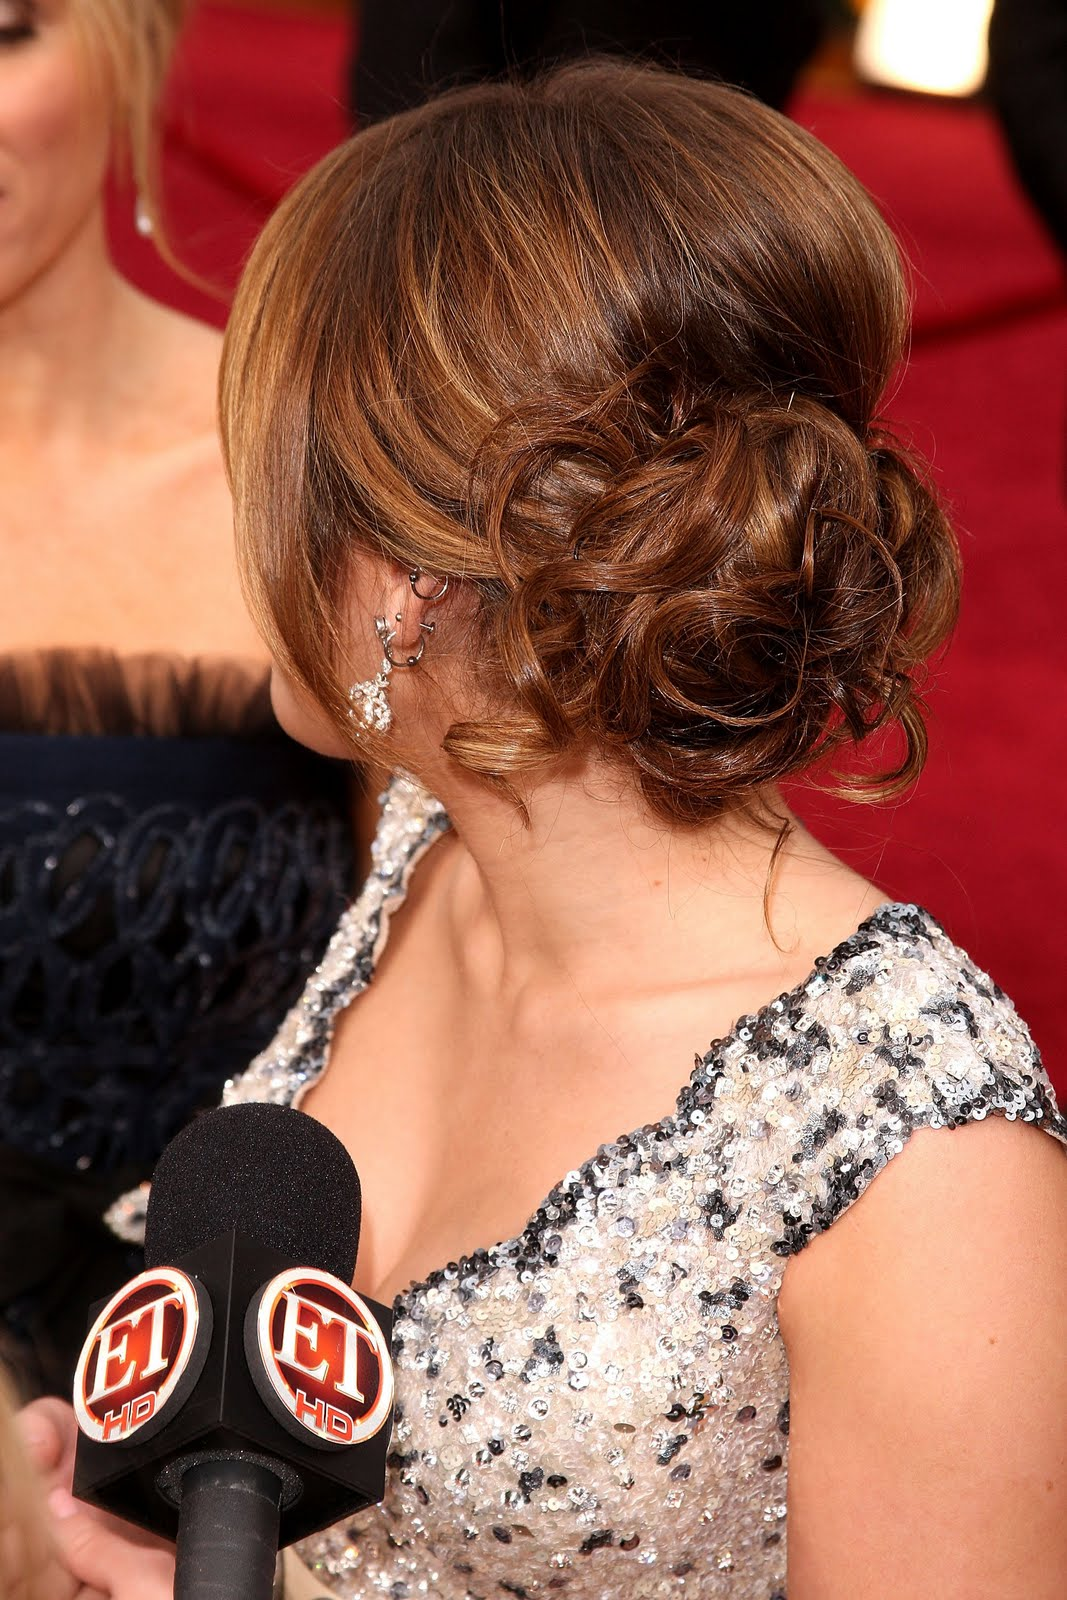 pdo hairstyle hairstyles-10